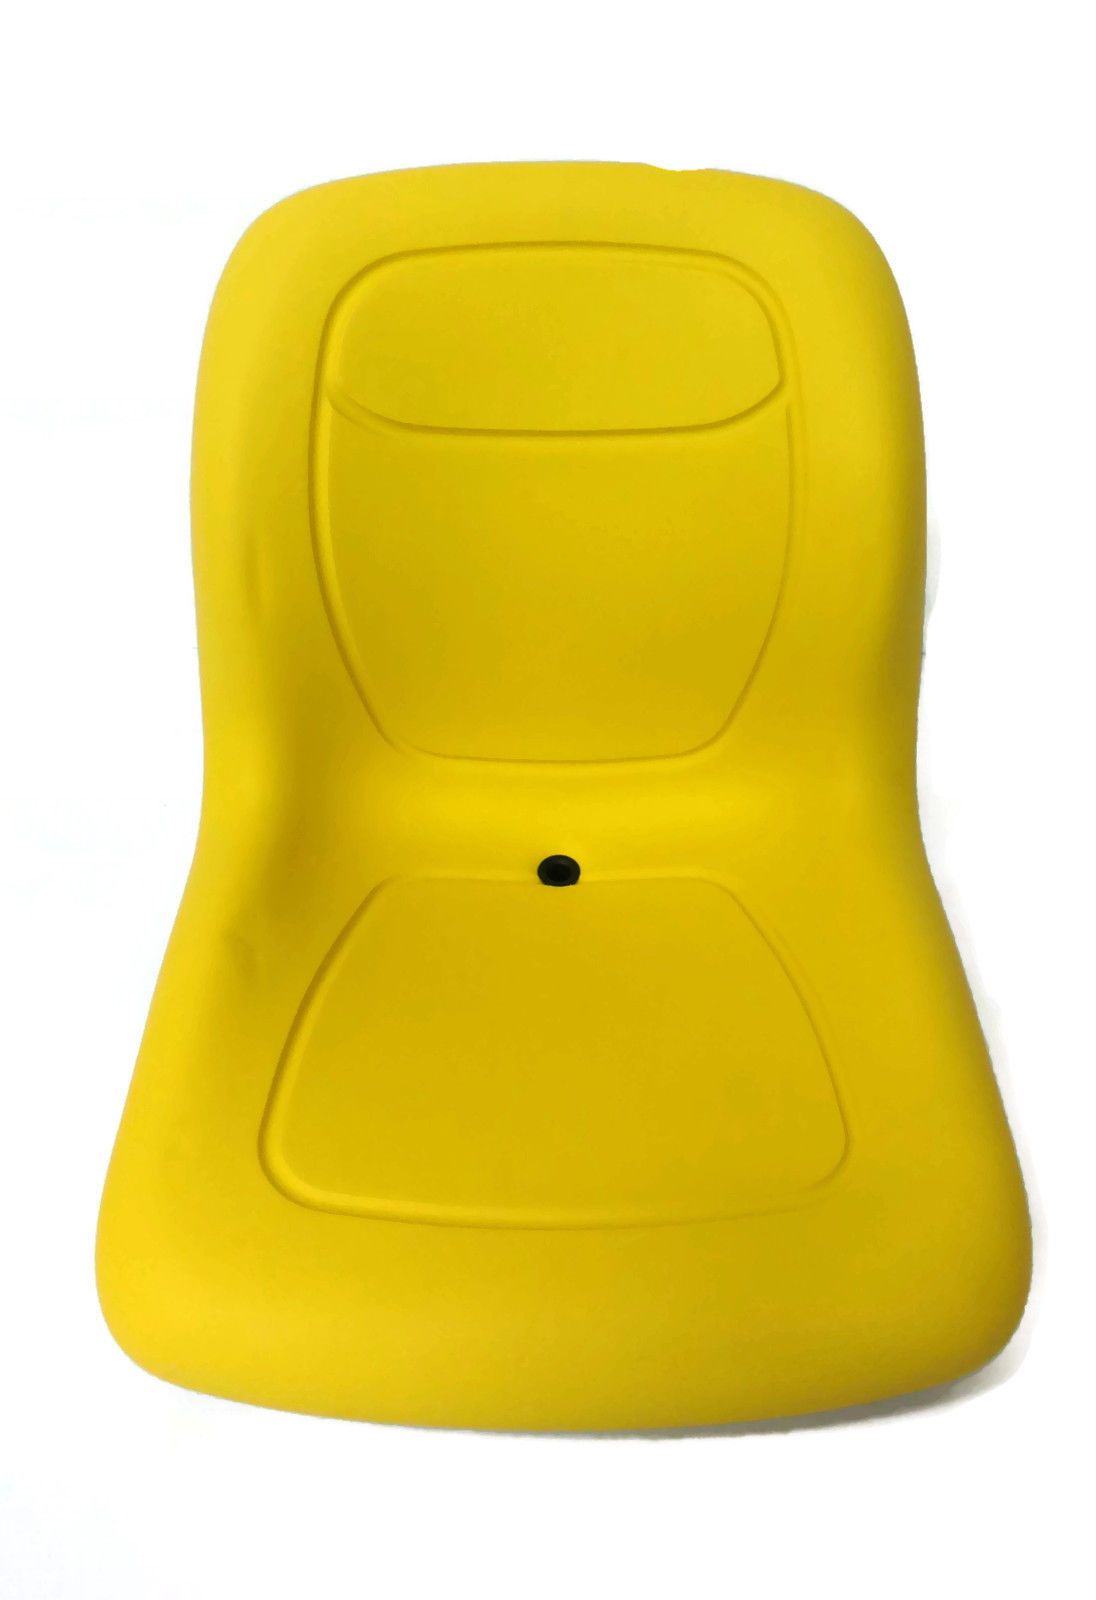 New Yellow HIGH BACK SEAT w  Slide Track Kit for Case Loader Backhoe Made USA by The ROP Shop by